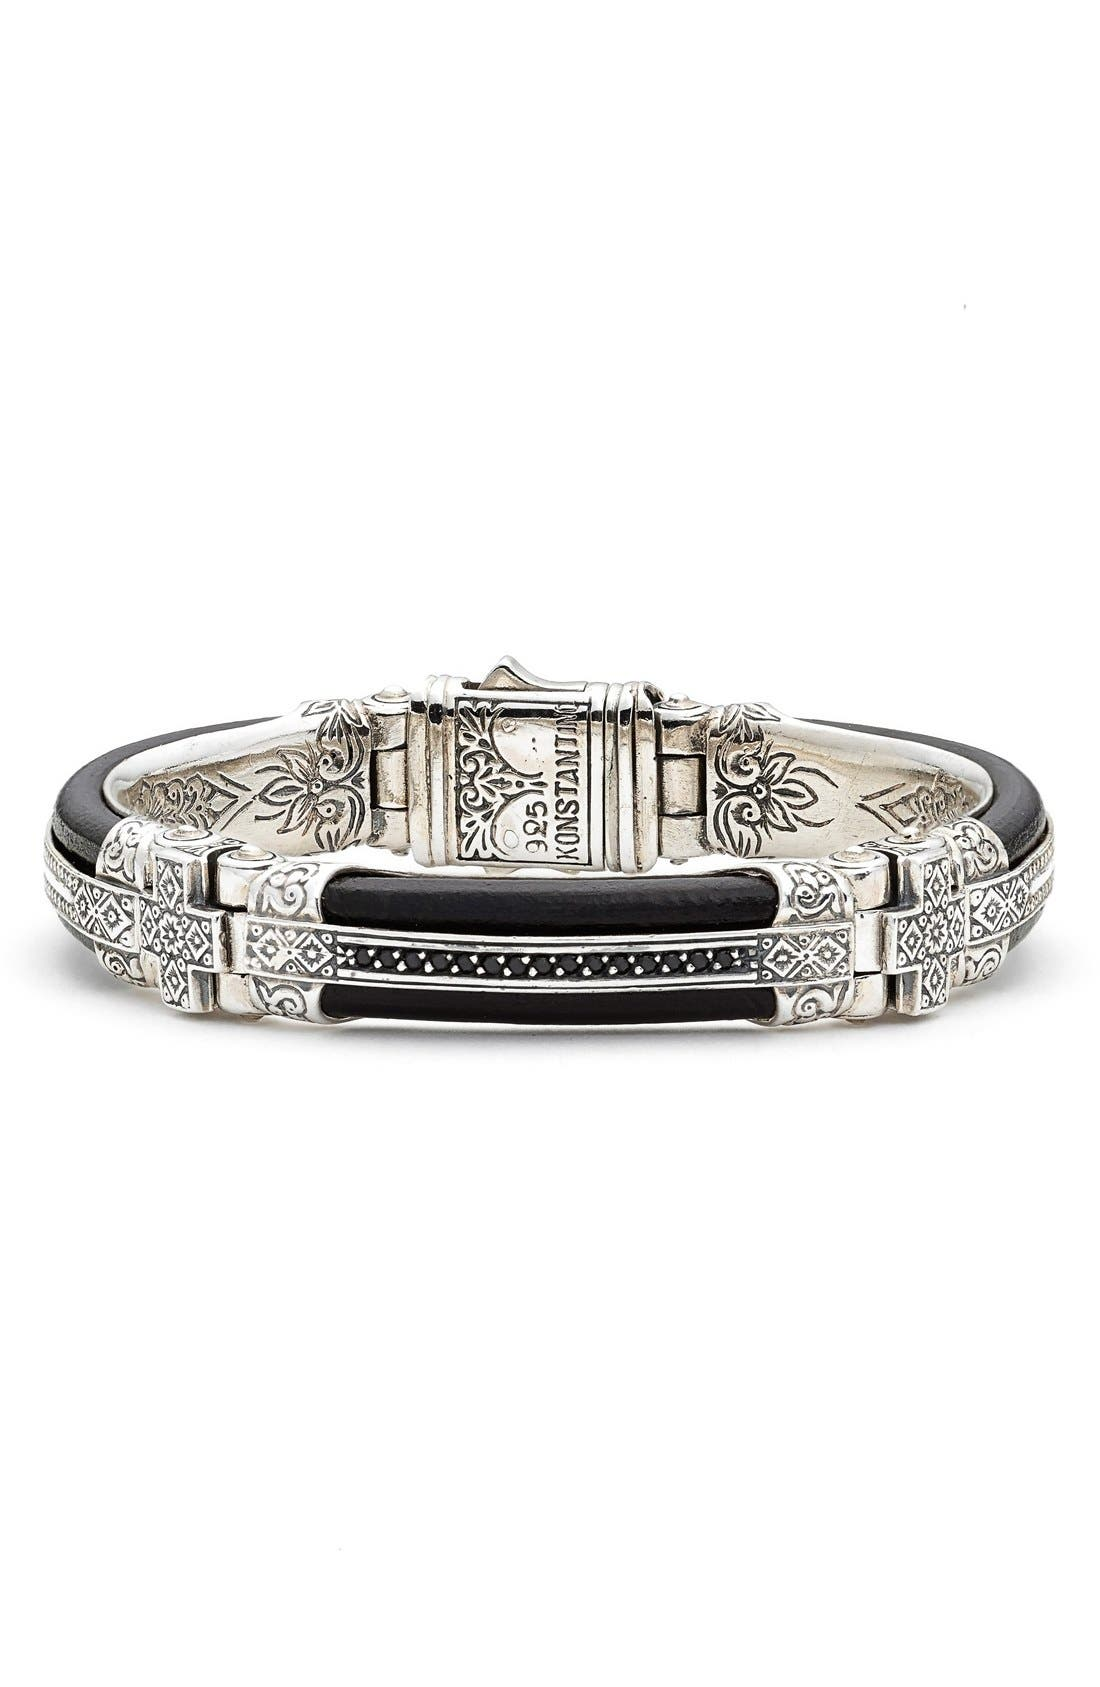 Plato Etched Sterling Silver & Leather Bracelet,                         Main,                         color, Silver